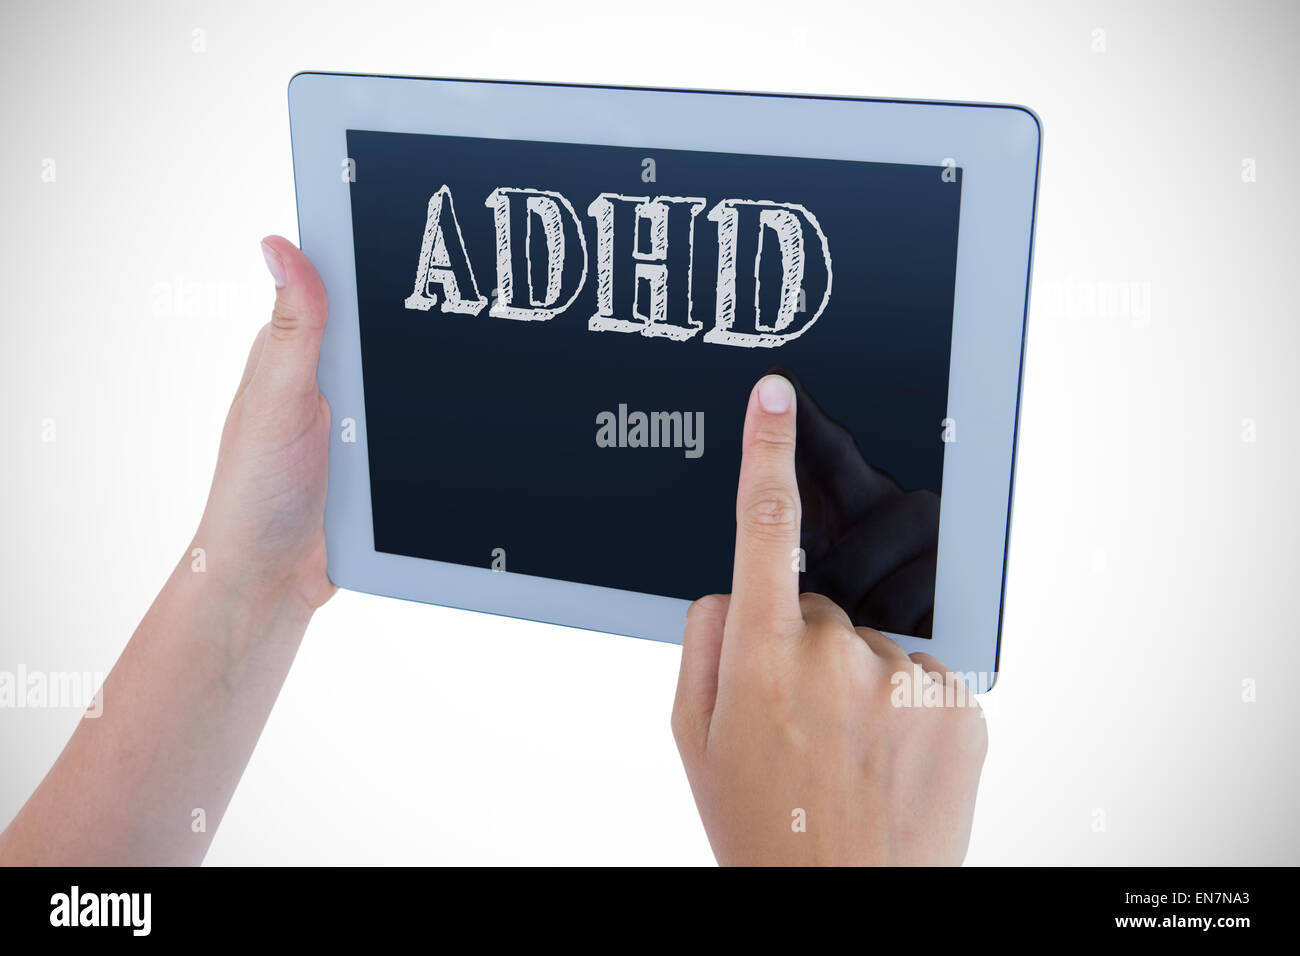 Adhd against woman using tablet pc - Stock Image